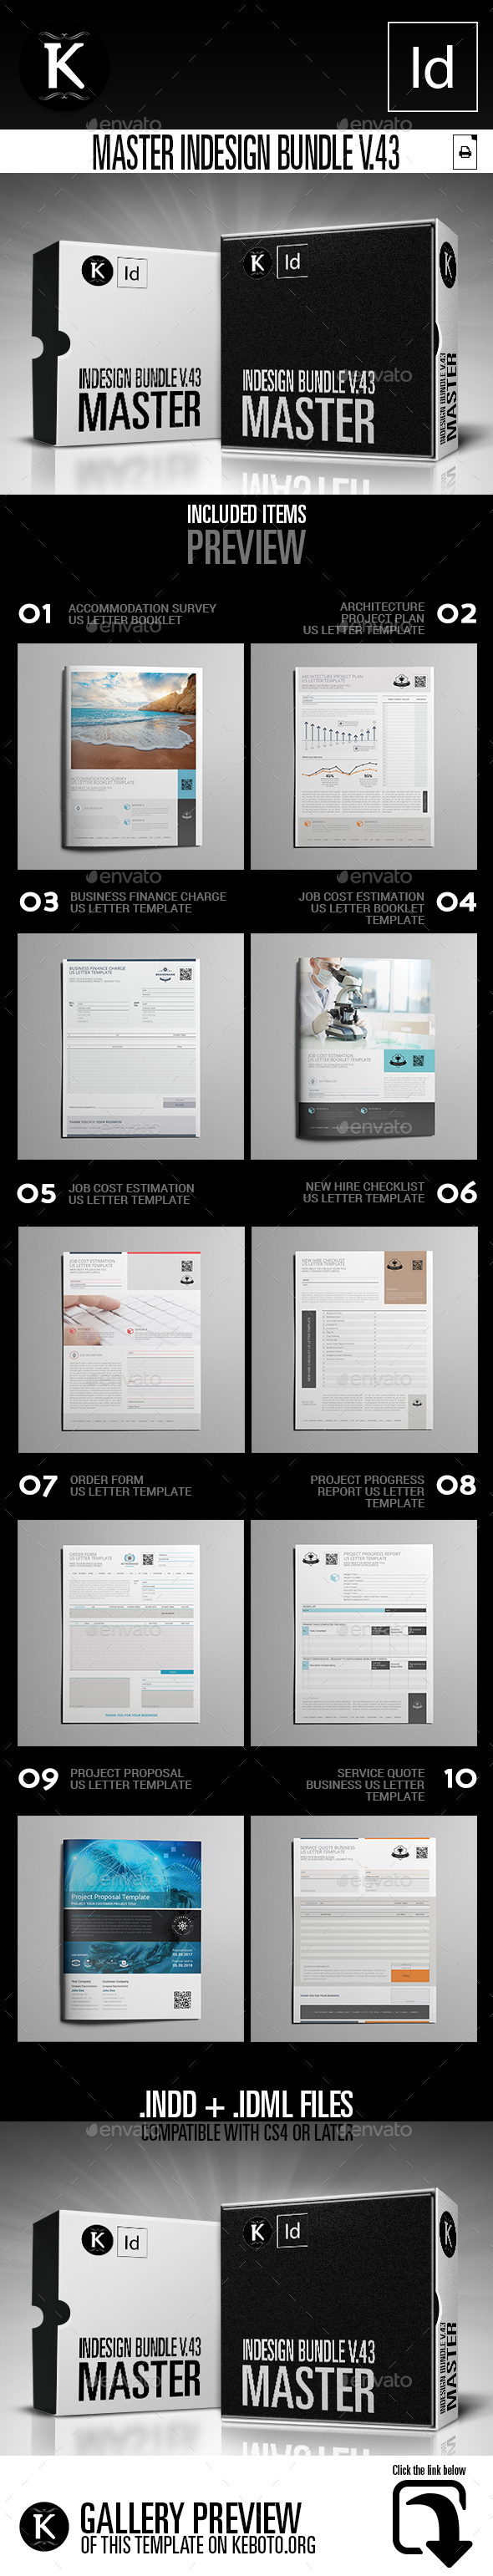 Master inDesign Bundle v.43 - Miscellaneous Print Templates